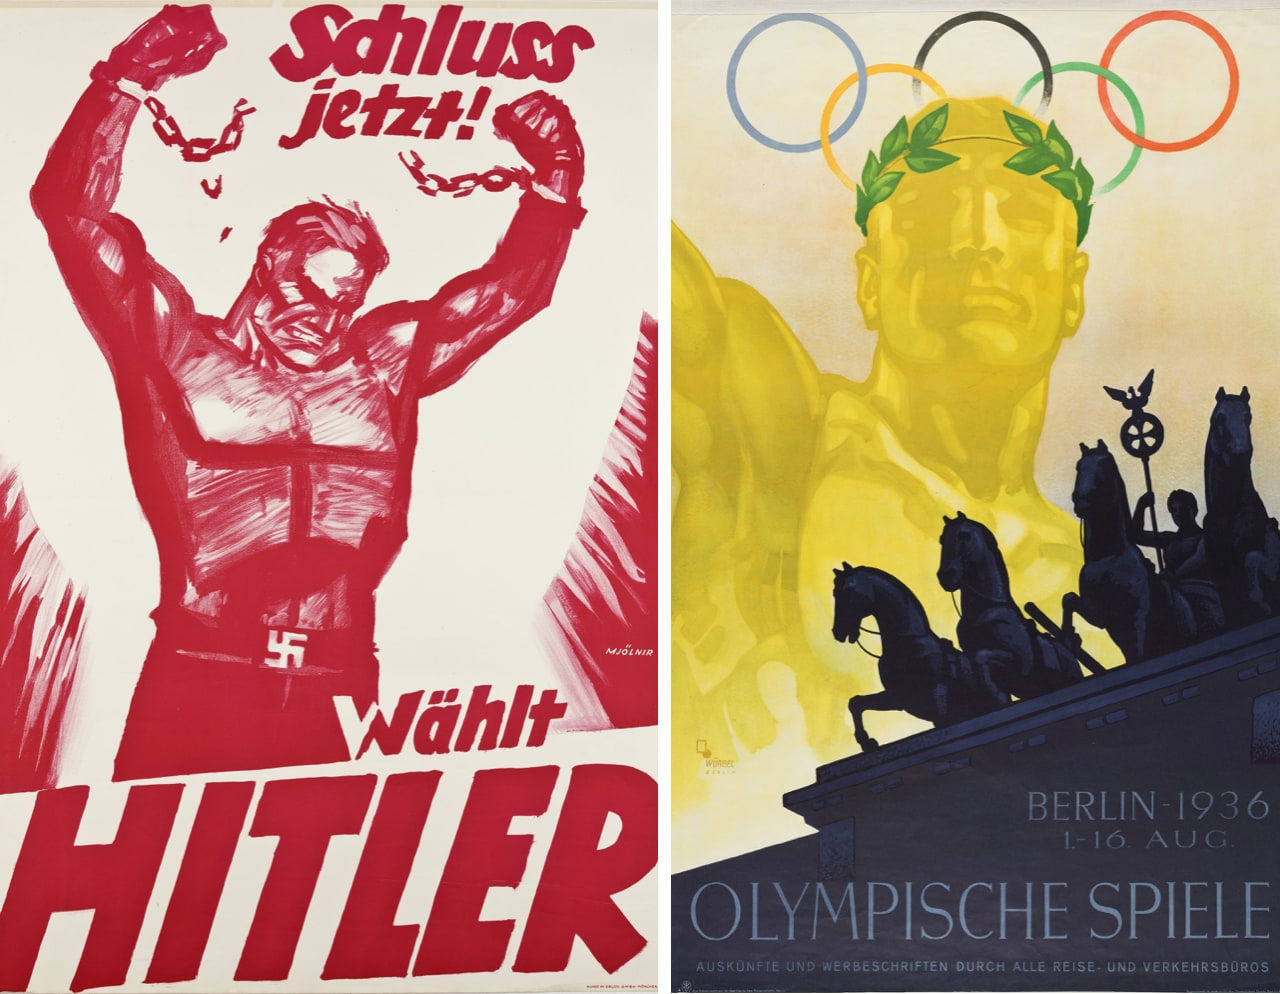 Left: Election poster NSDAP, 1932. (Münchner Stadtmuseum, Sammlung Reklamekunst). Right: Poster for the Olympic Games in Berlin, 1936. (Münchner Stadtmuseum, Sammlung Reklamekunst)